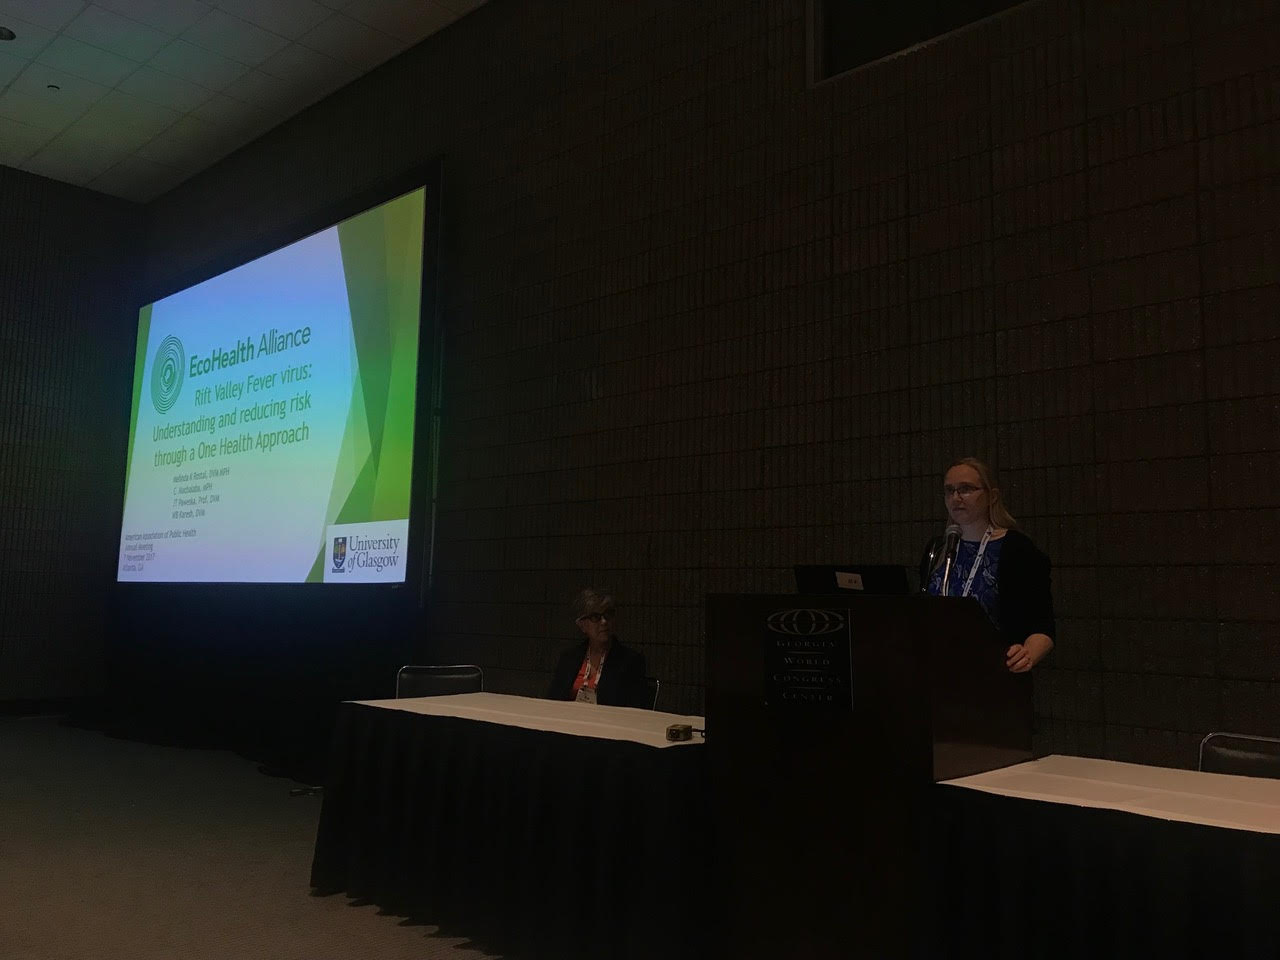 Dr. Melinda Rostal presents at the annual APHA meeting